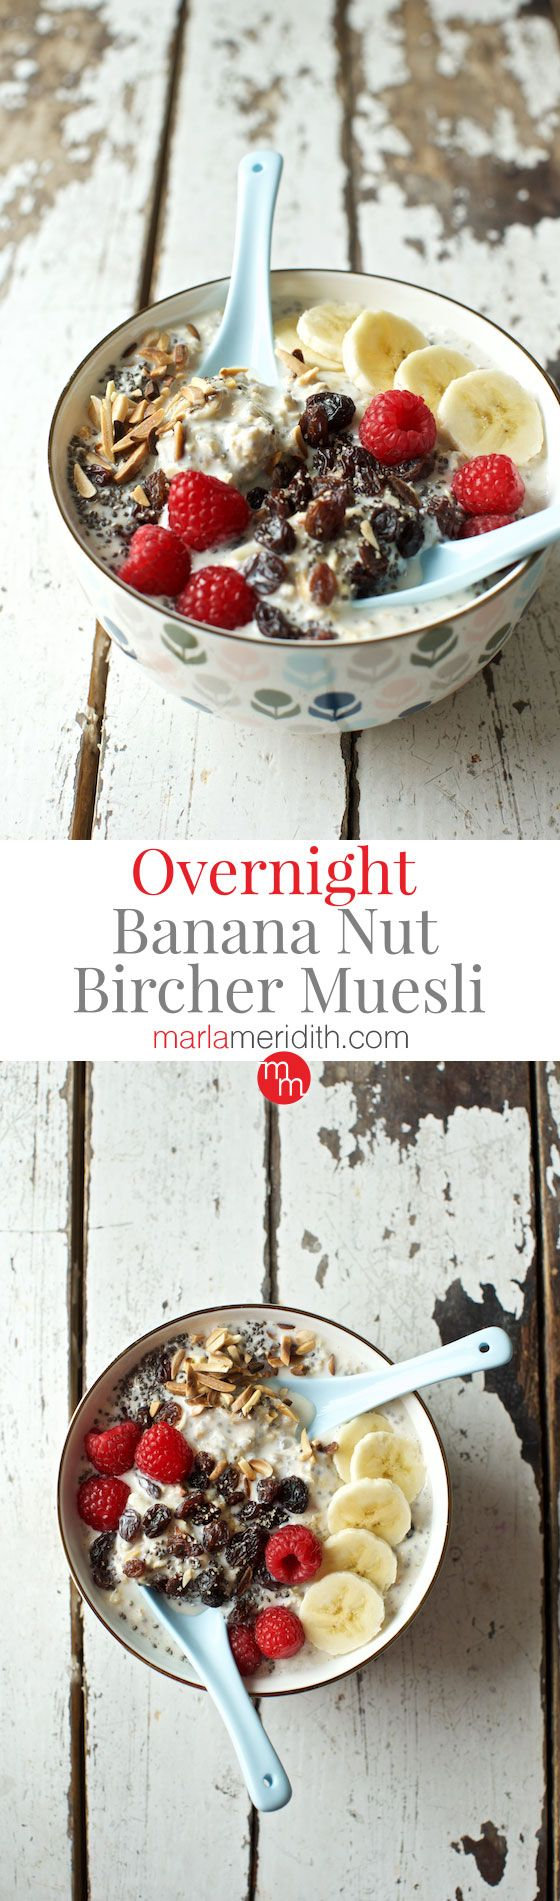 Overnight Banana Nut Bircher Muesli, this breakfast recipe is super healthy and delicious! MarlaMeridith.com ( @marlameridith )